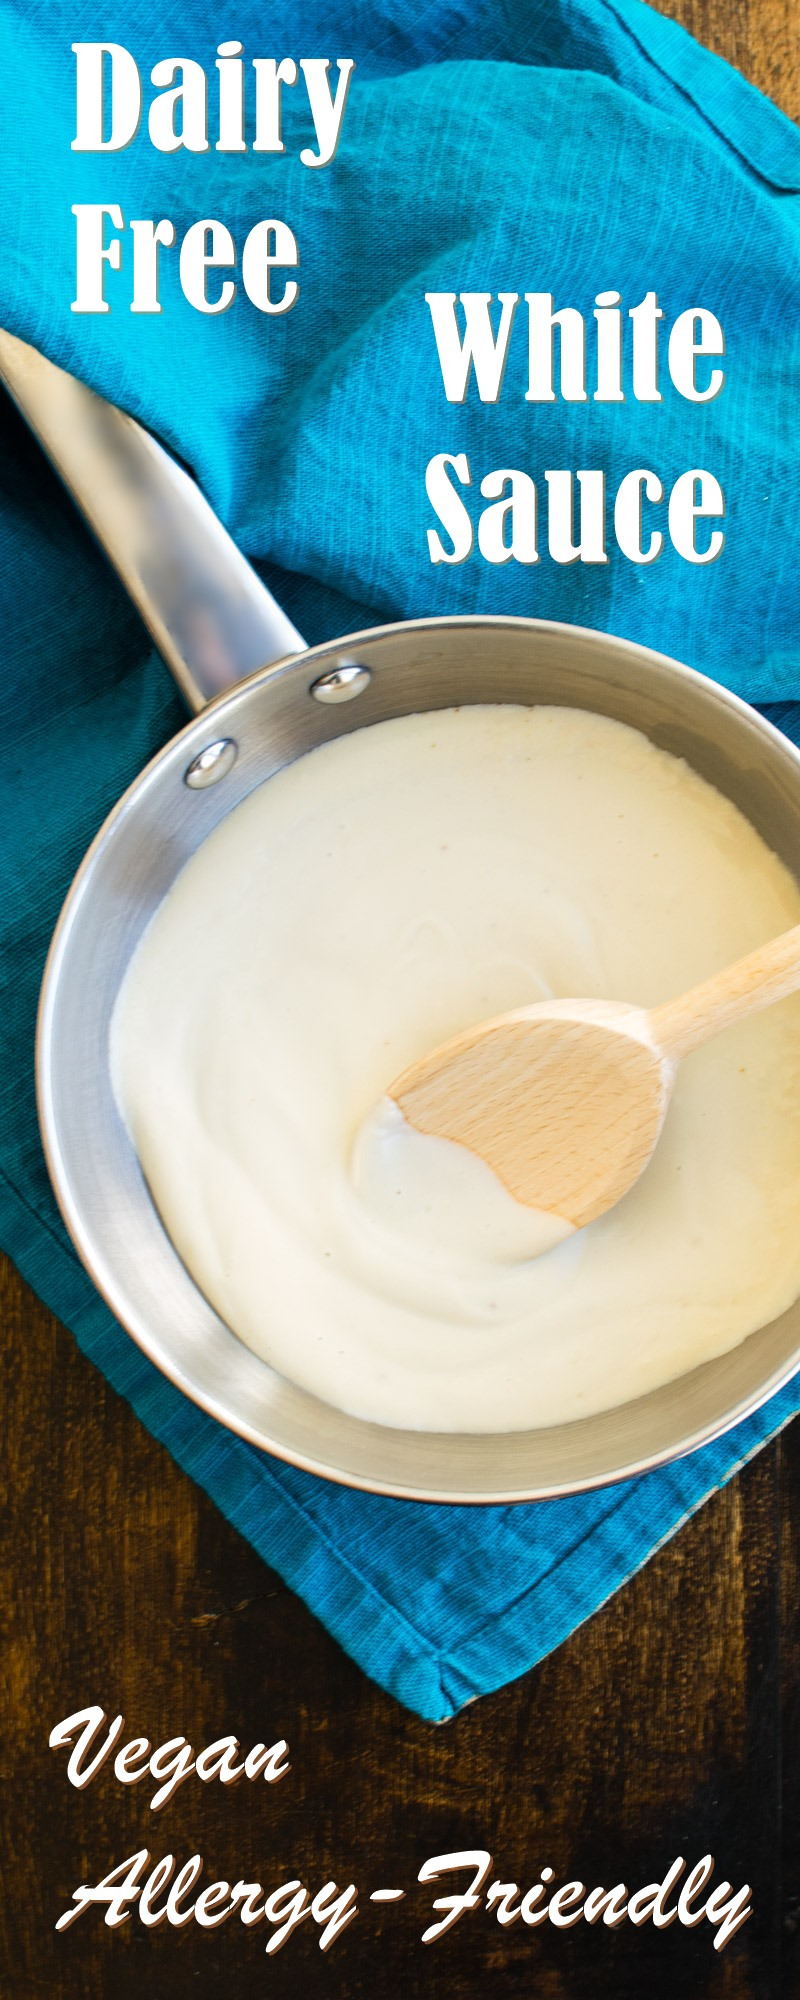 Basic Dairy-Free White Sauce Recipe - 5 Minute Vegan and Allergy-Friendly